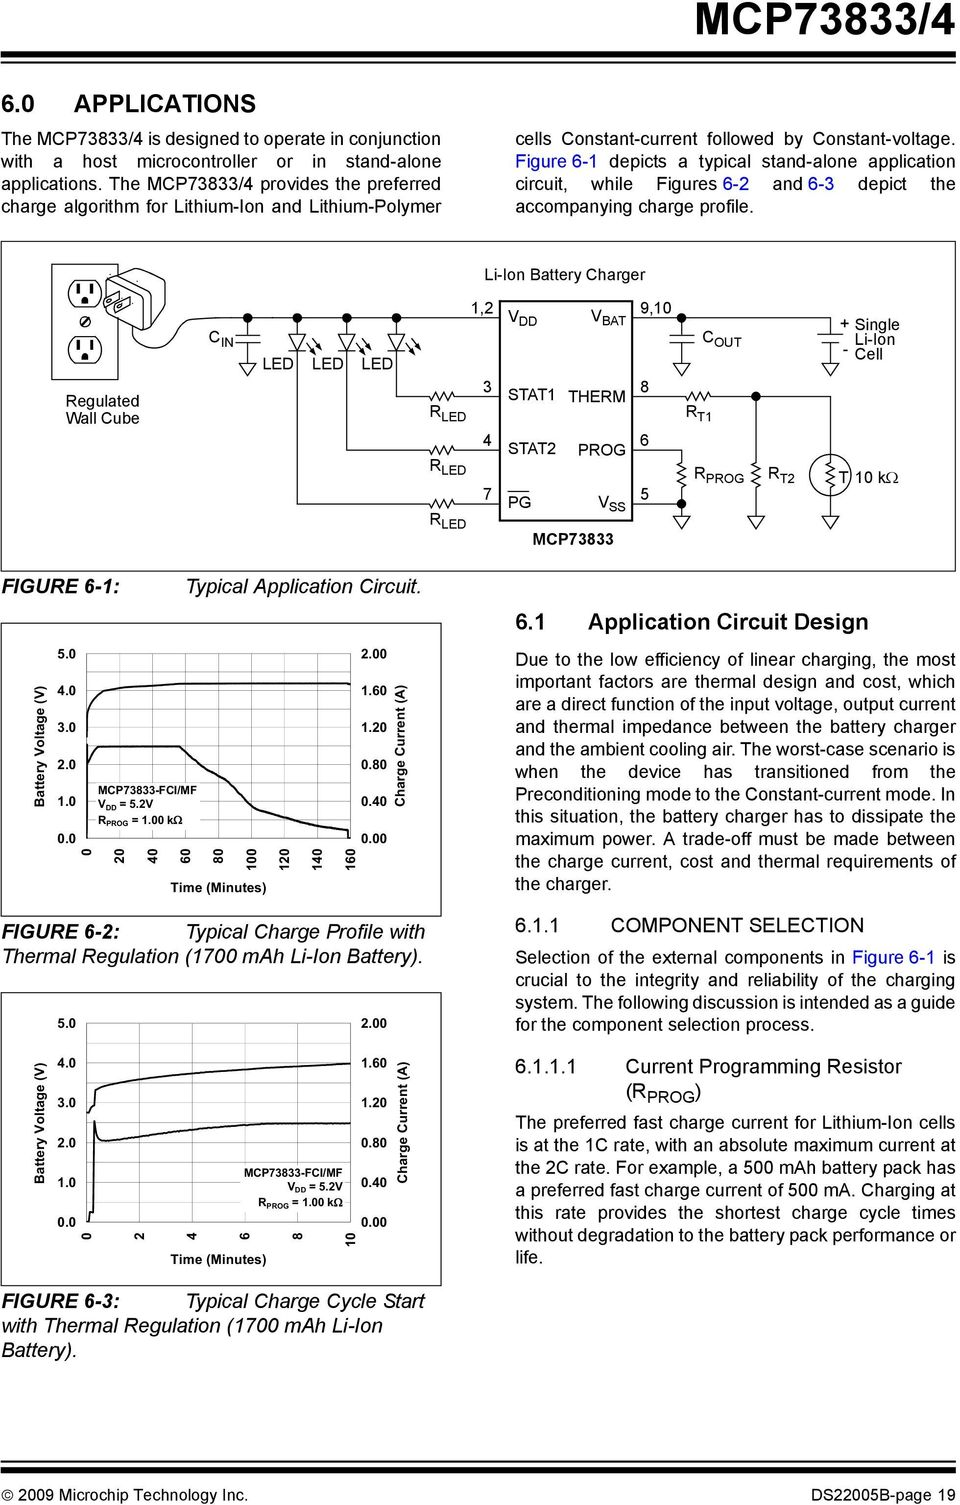 Mcp73833 4 Stand Alone Linear Li Ion Polymer Charge Management Liion Battery Charger Circuit Diagram Figure 6 1 Depicts A Typical Application While Figures